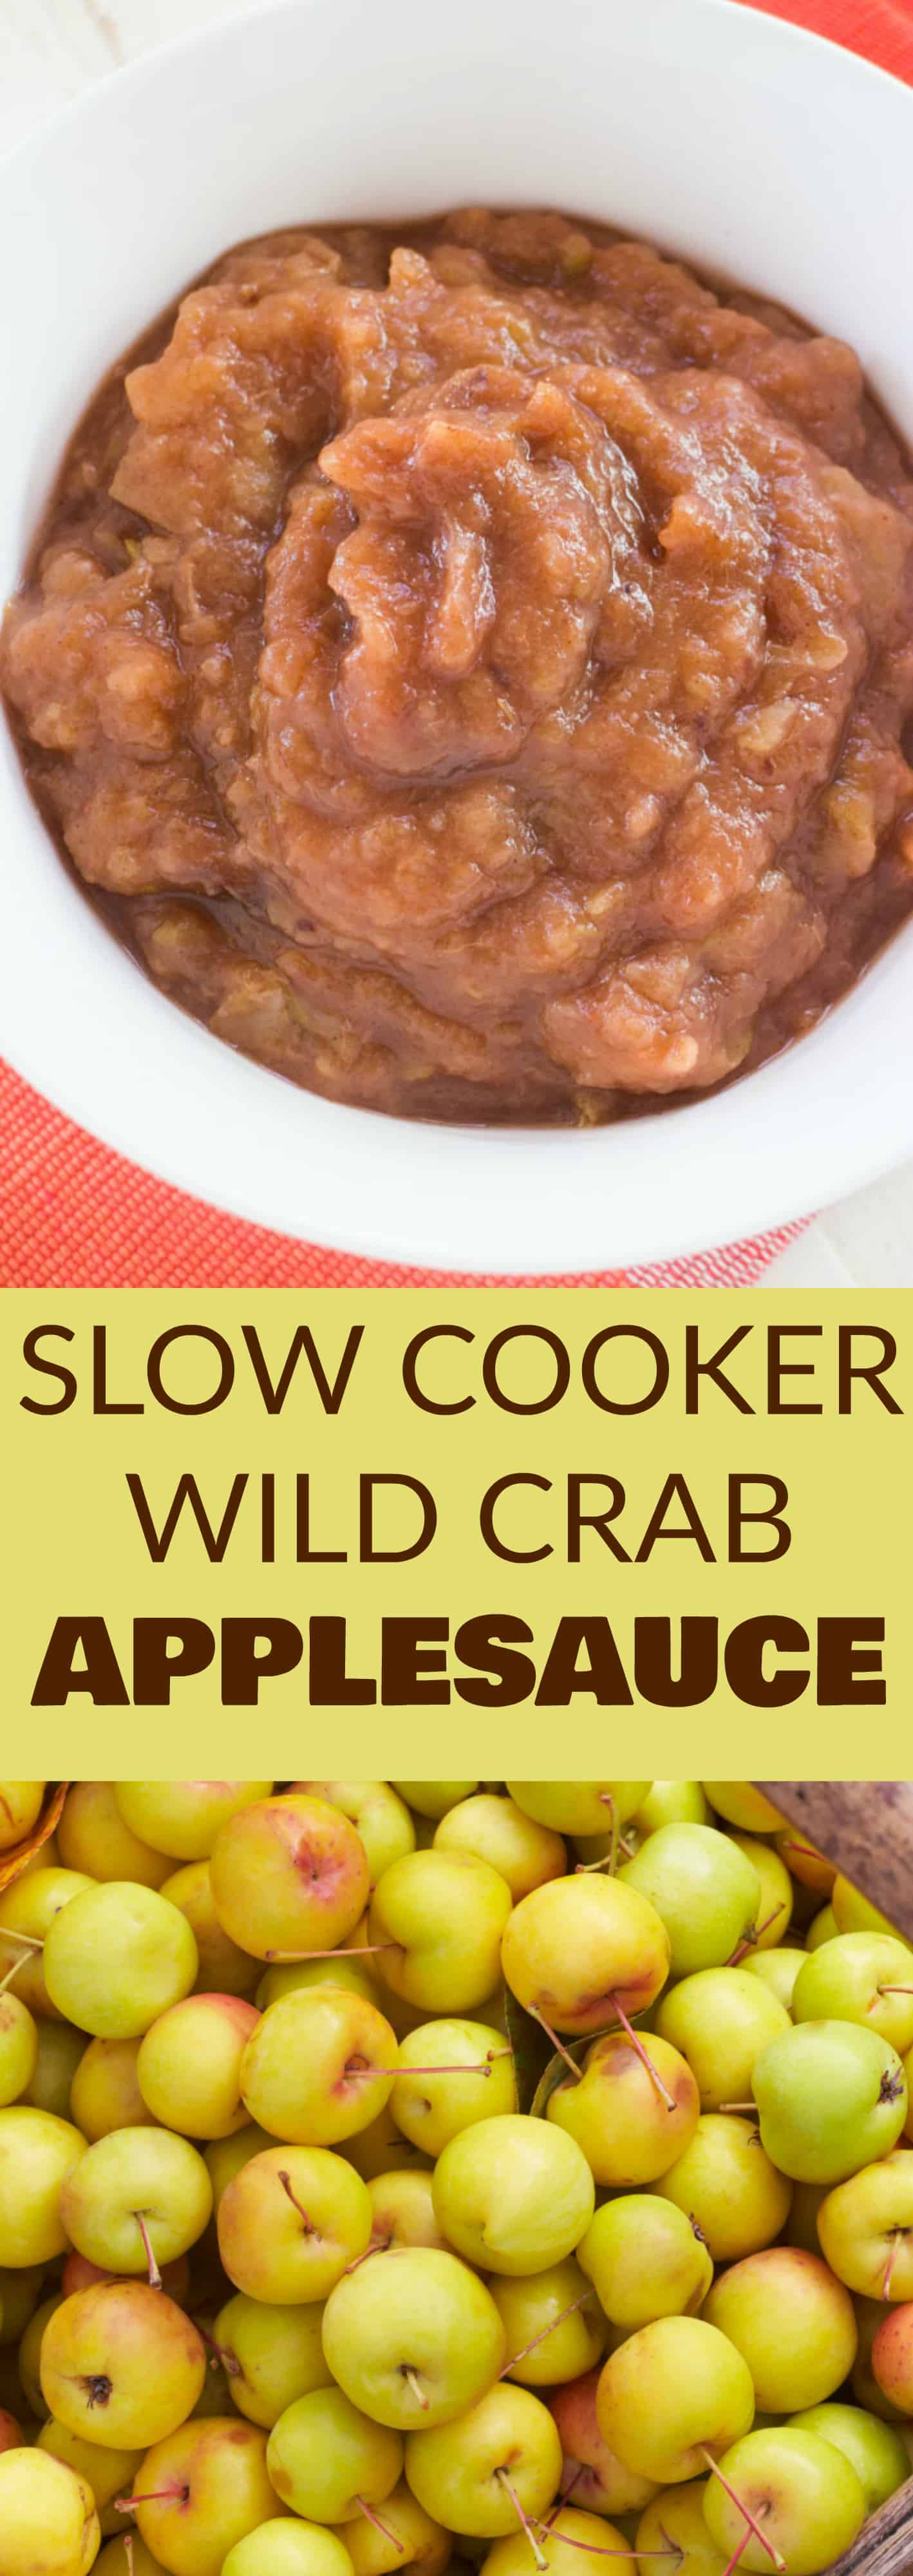 SUGAR FREE Crockpot Applesauce Recipe! It's one of the easiest slow cooker applesauce recipes that makes delicious homemade sugar free applesauce! Looking for crab apple recipes, then this is great for crab apples but you can use other apples too! I love canning this healthy applesauce recipe to last all Winter long!